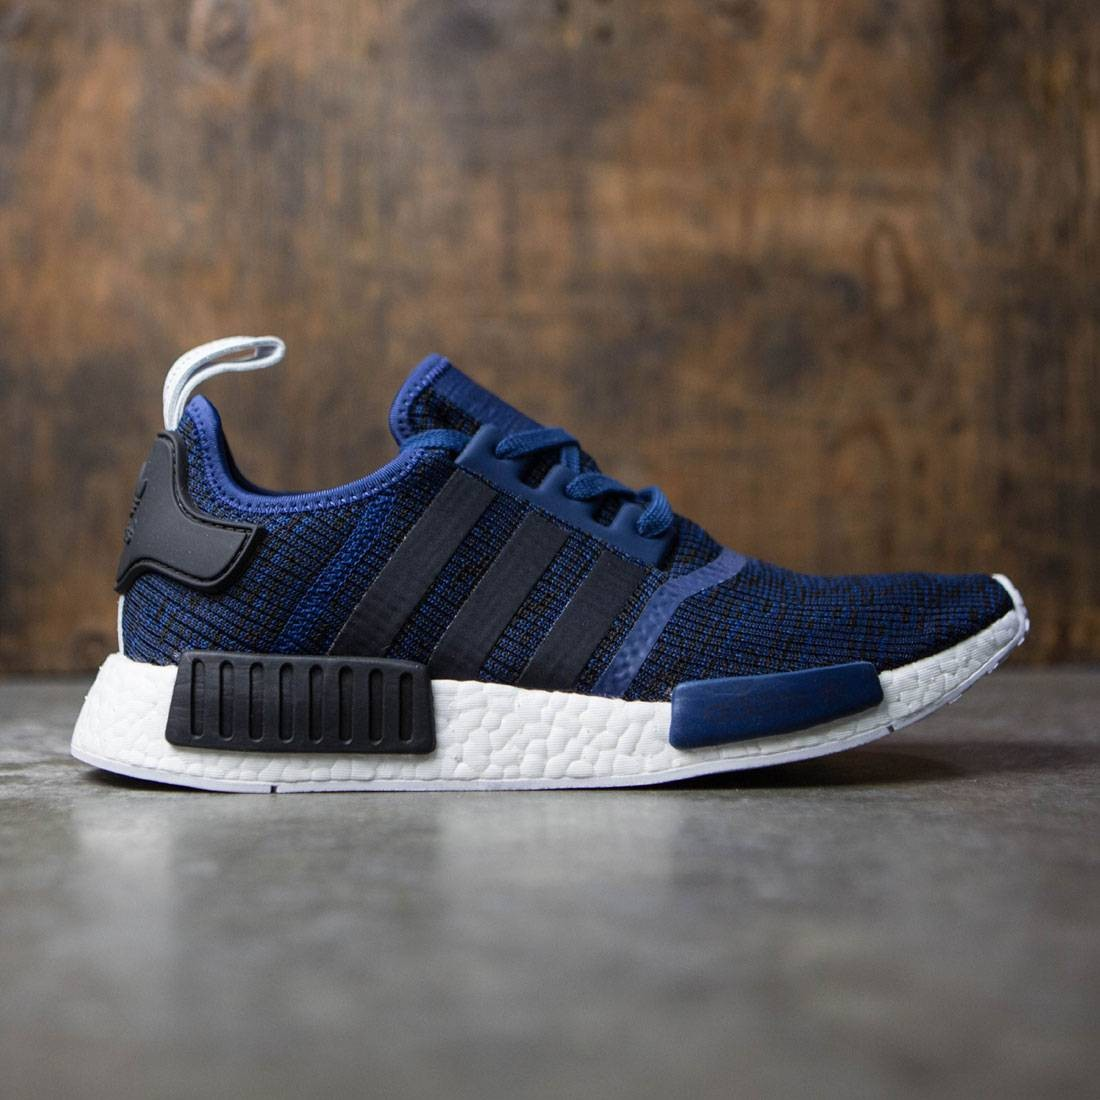 best sneakers ba1f3 9e4e1 Adidas Men NMD R1 blue mystery blue core black collegiate navy